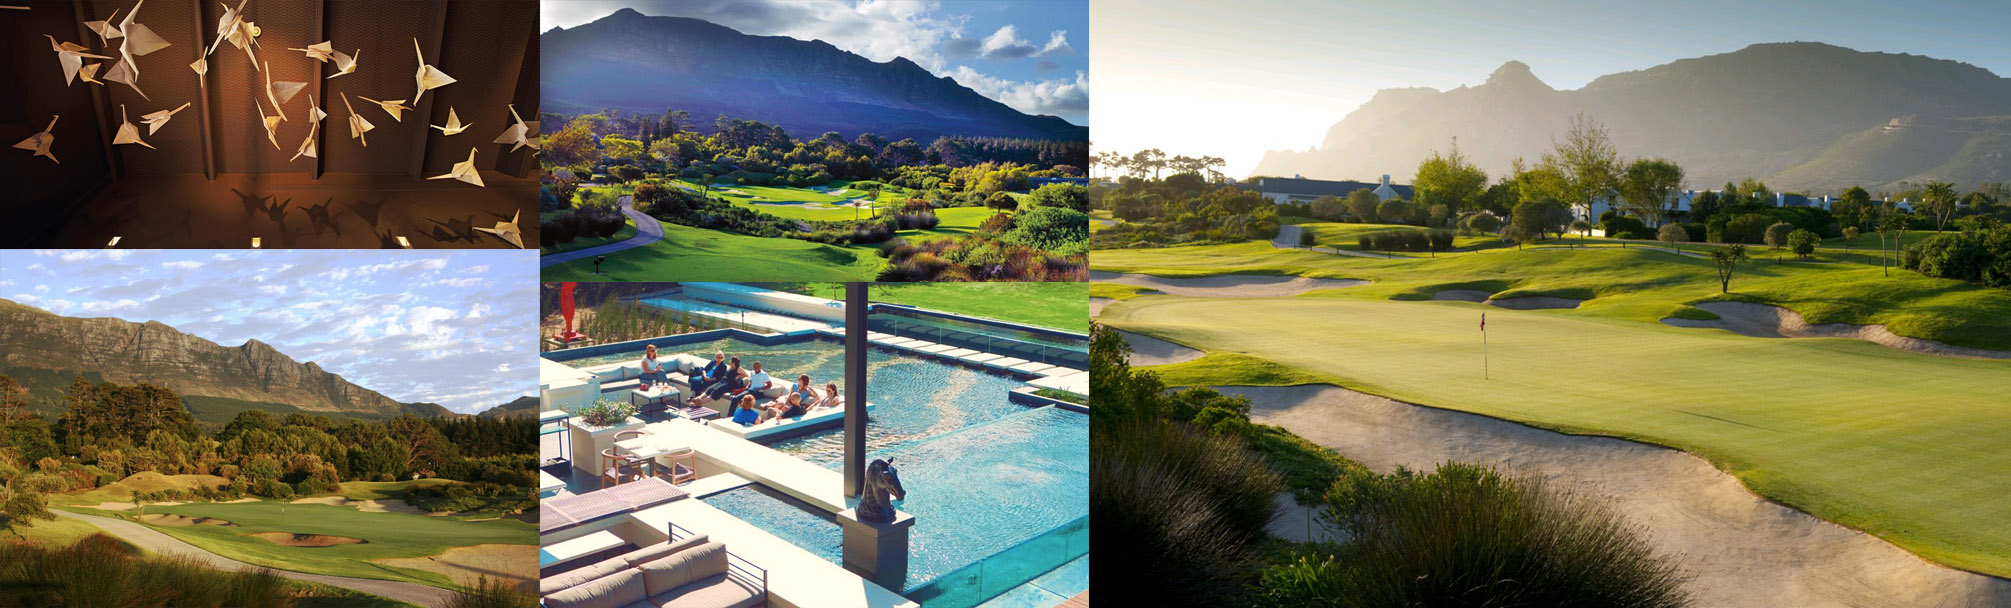 Steenberg Golfing in CapeTown - IntoCapeTown.com